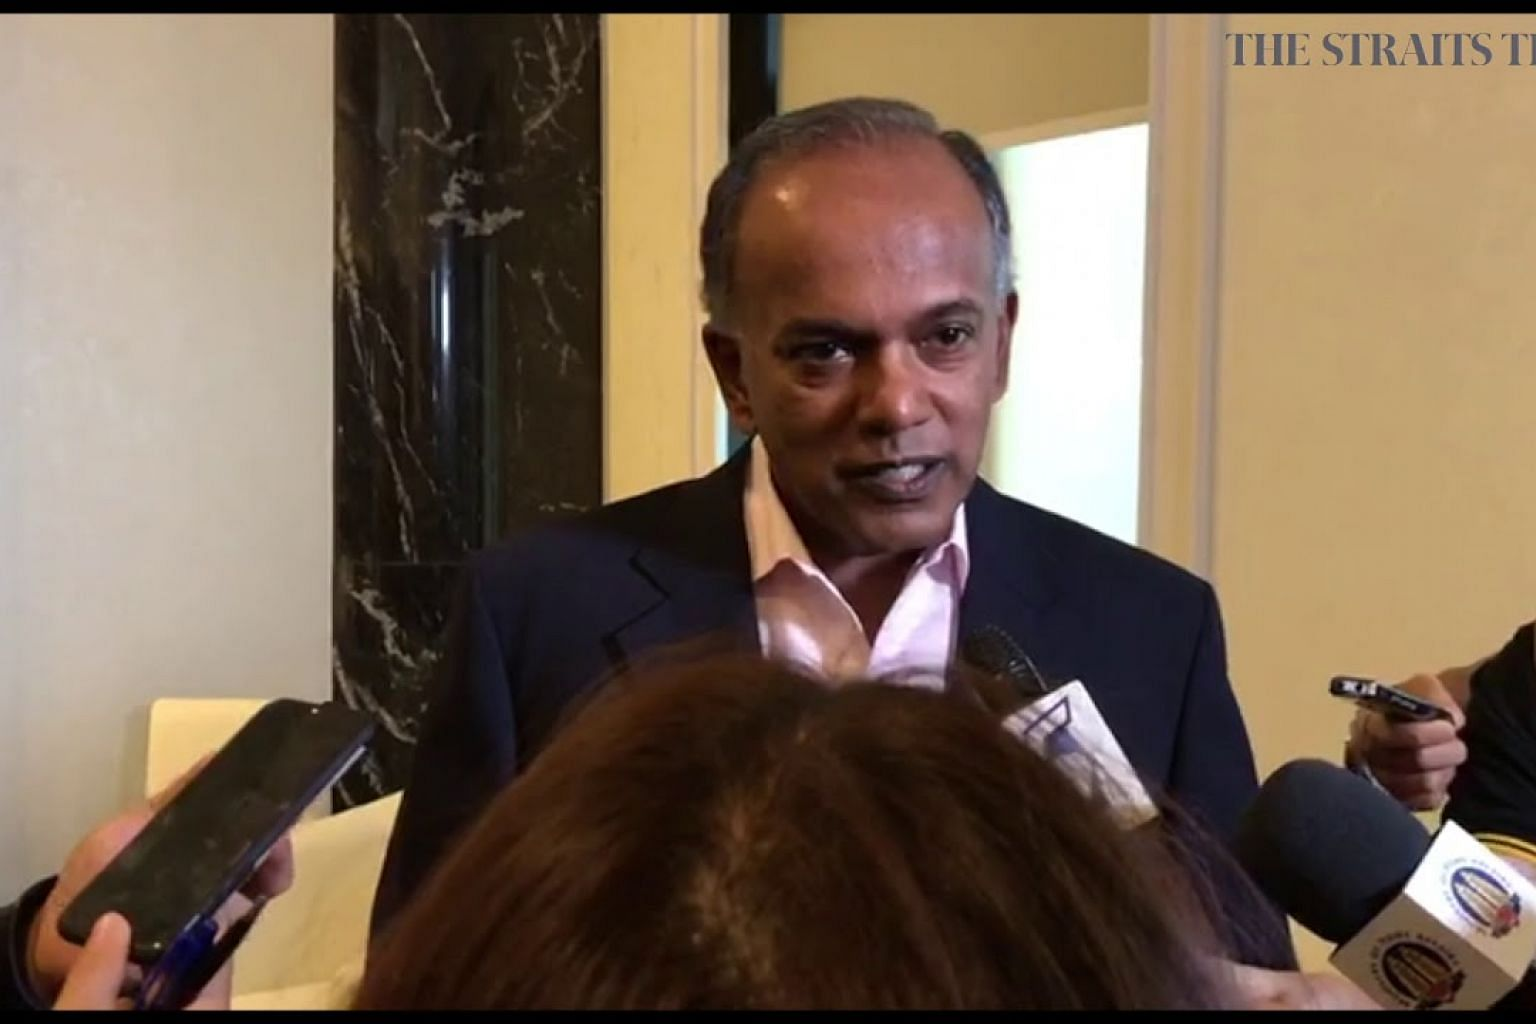 Home Affairs and Law Minister K. Shanmugam on calls to decriminalise attempted suicide